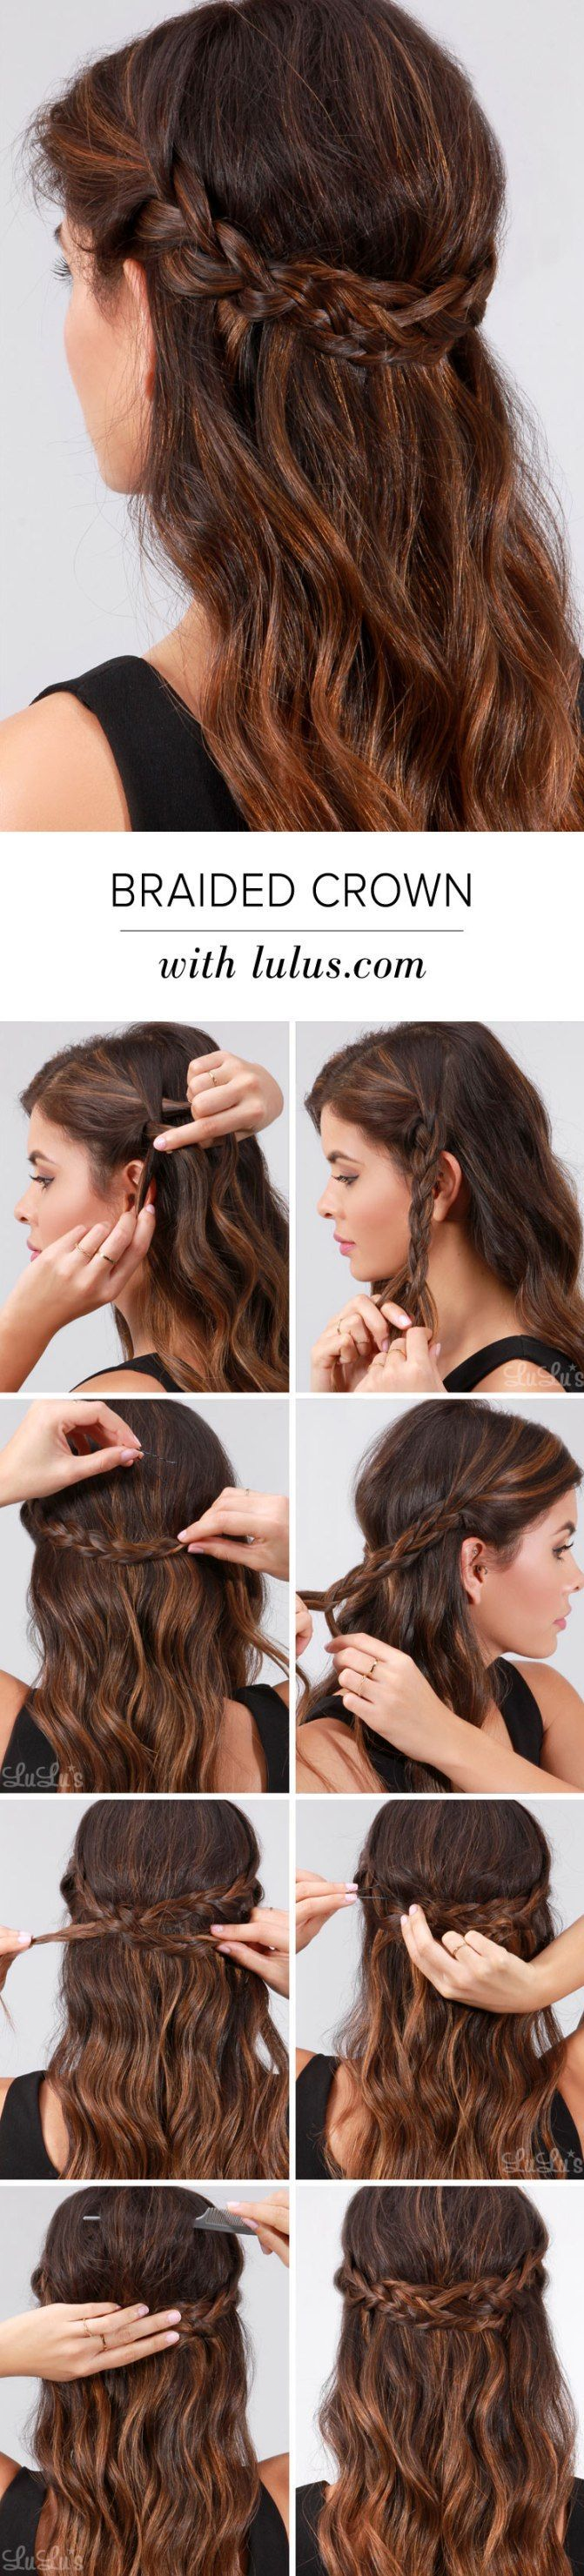 8 Super Easy Braids That Will Fix Any Bad Hair Day